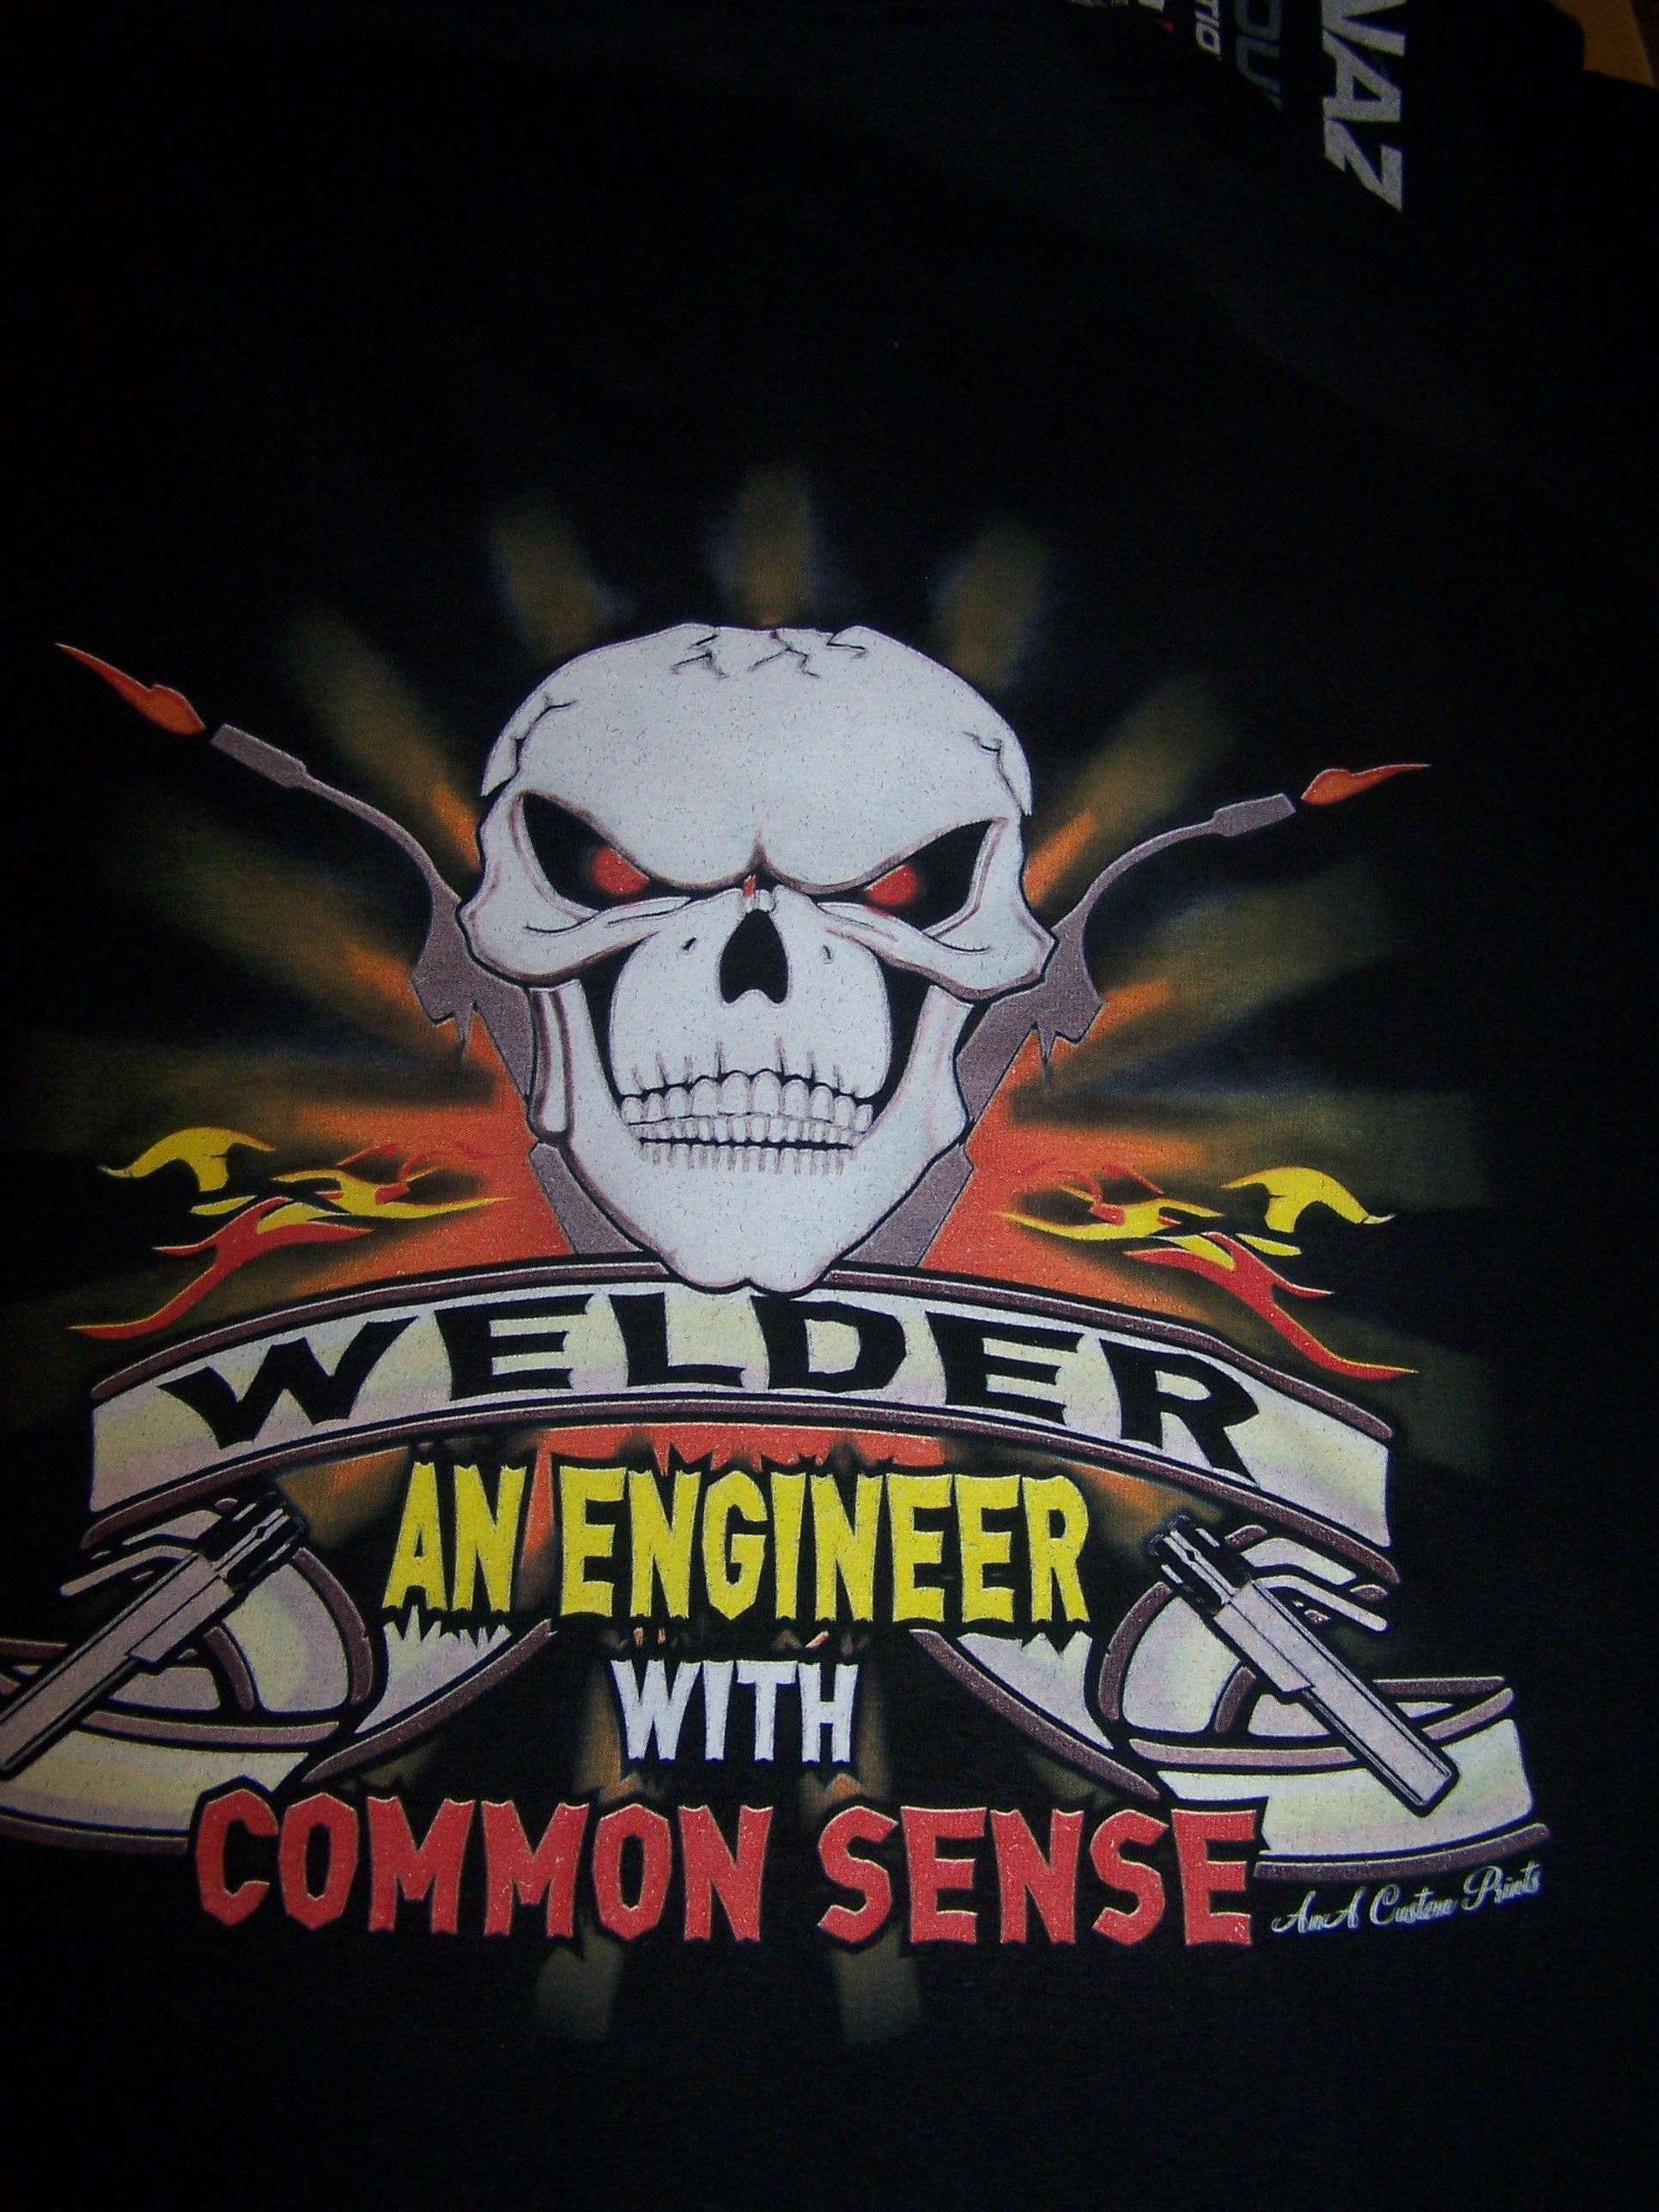 Welder an Engineer with Common Sense